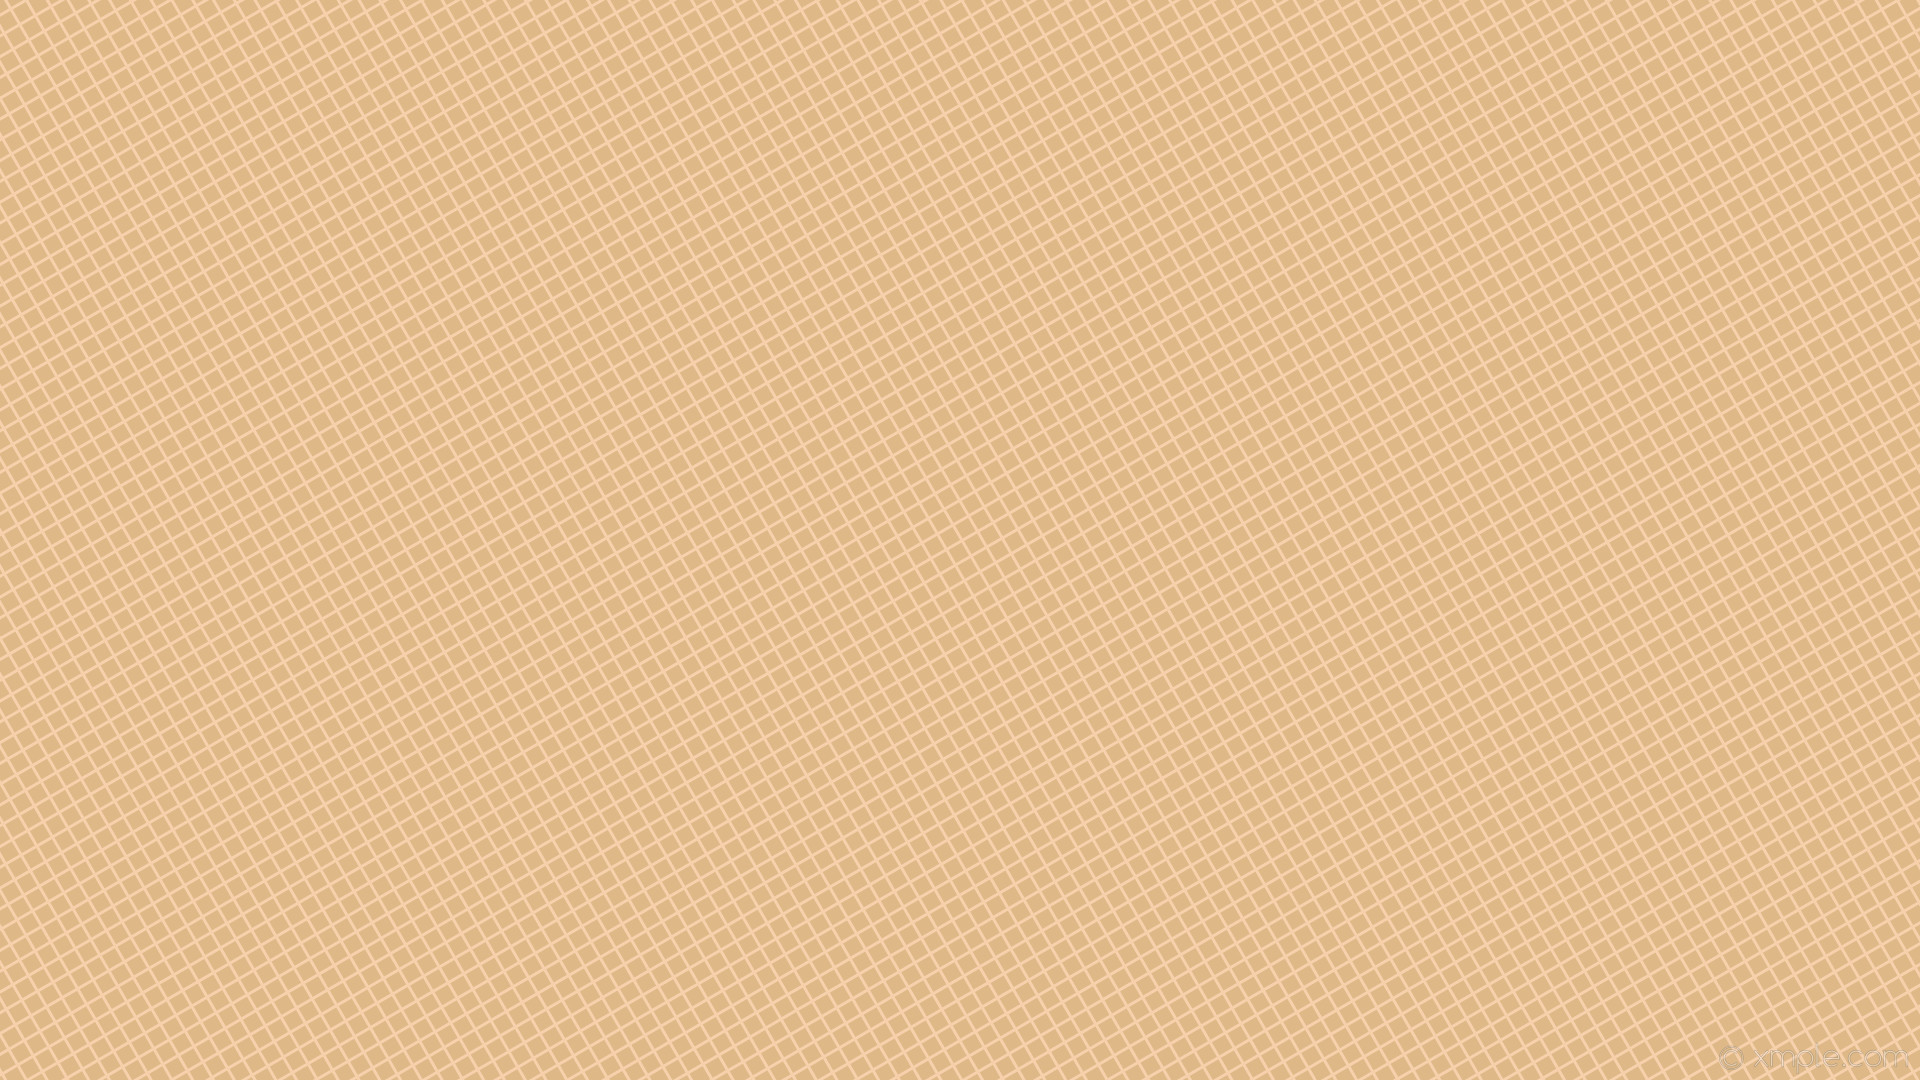 wallpaper grid graph paper yellow brown burly wood peach puff #deb887  #ffdab9 30°